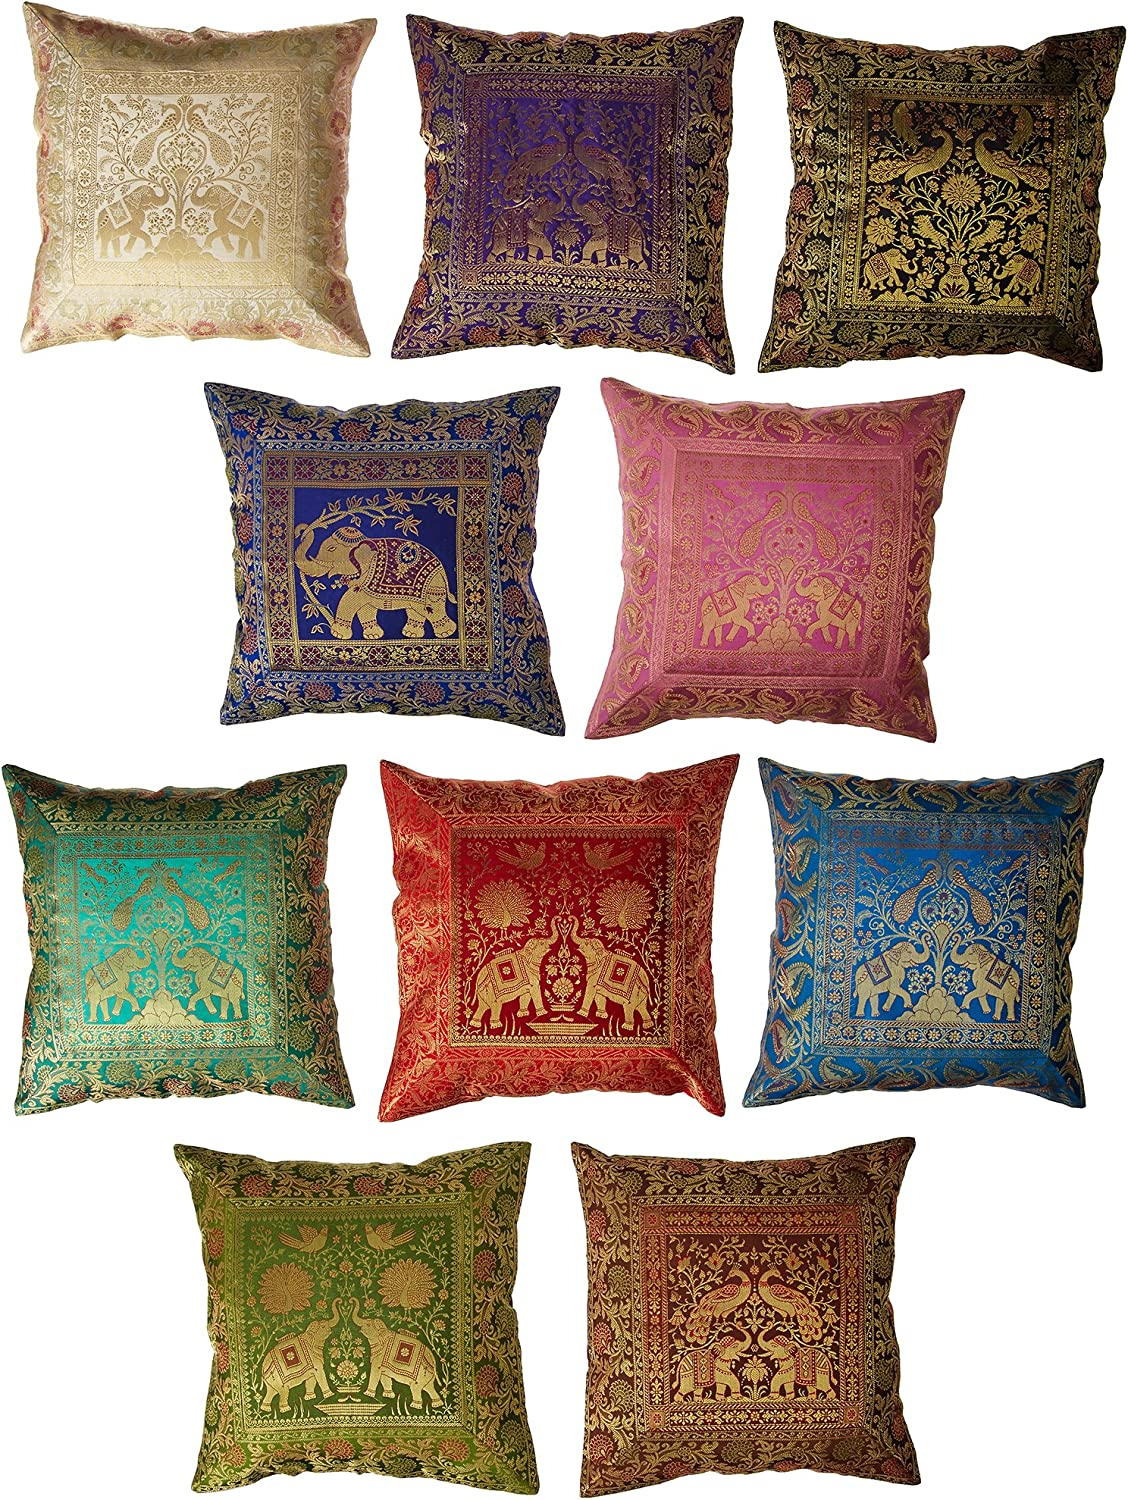 10 Pc Lot Square Silk Home Decor Cushion Cover, Indian Silk Brocade Pillow Cover , Handmade Banarsi Pillow Cover 16 X 16 Inch by The Ethnic Crafts